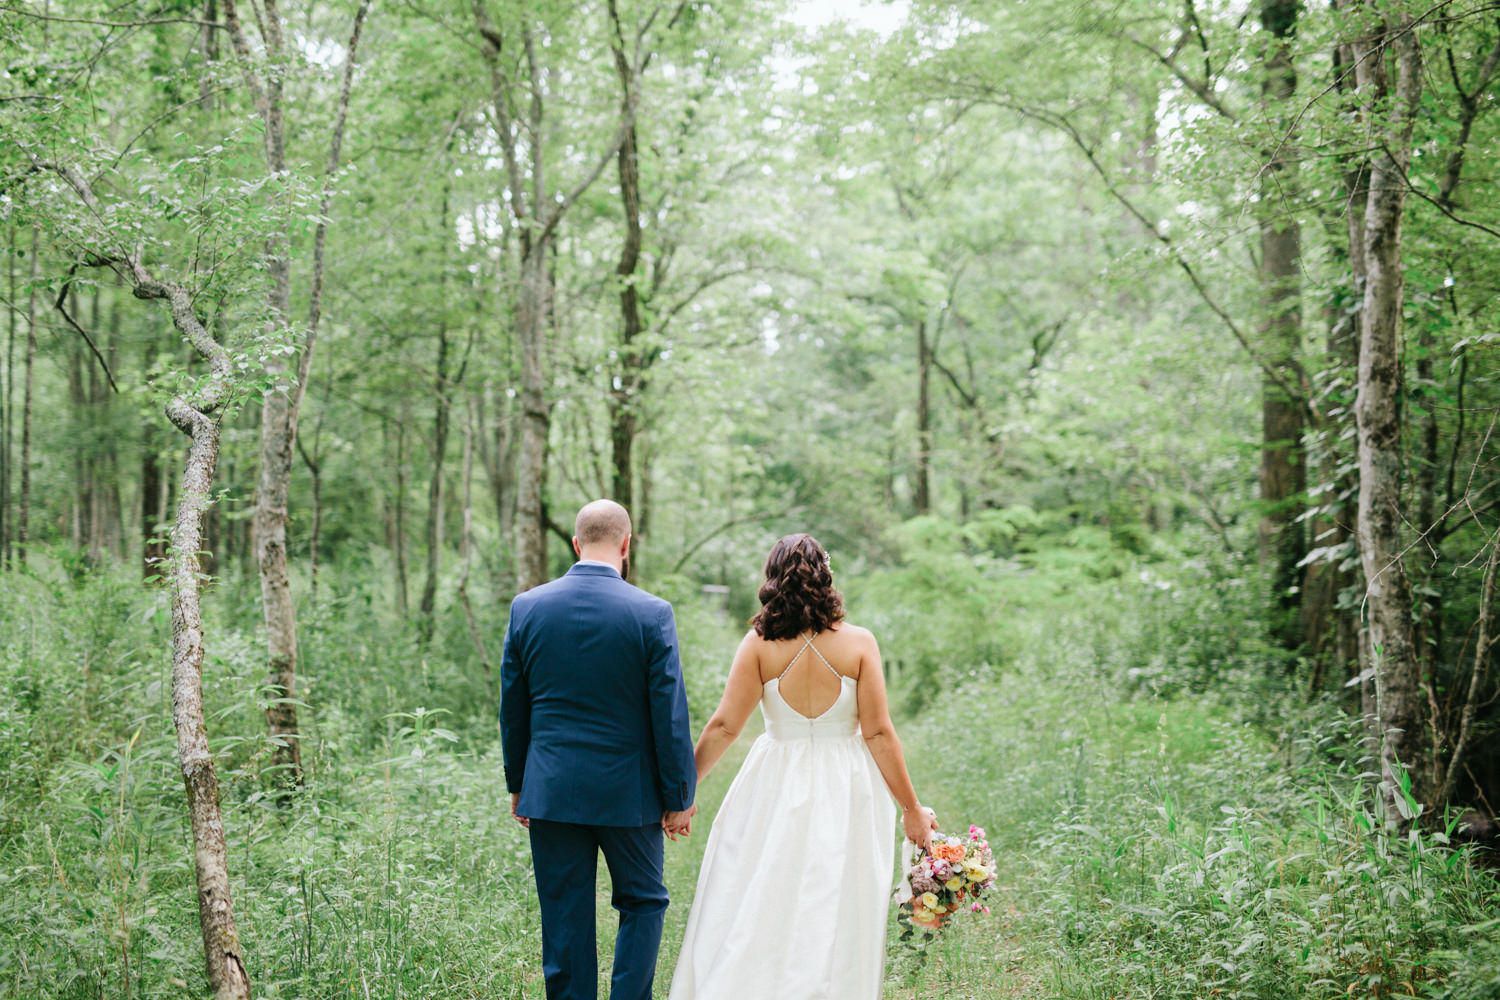 sugarboofarmwedding-2089.jpg